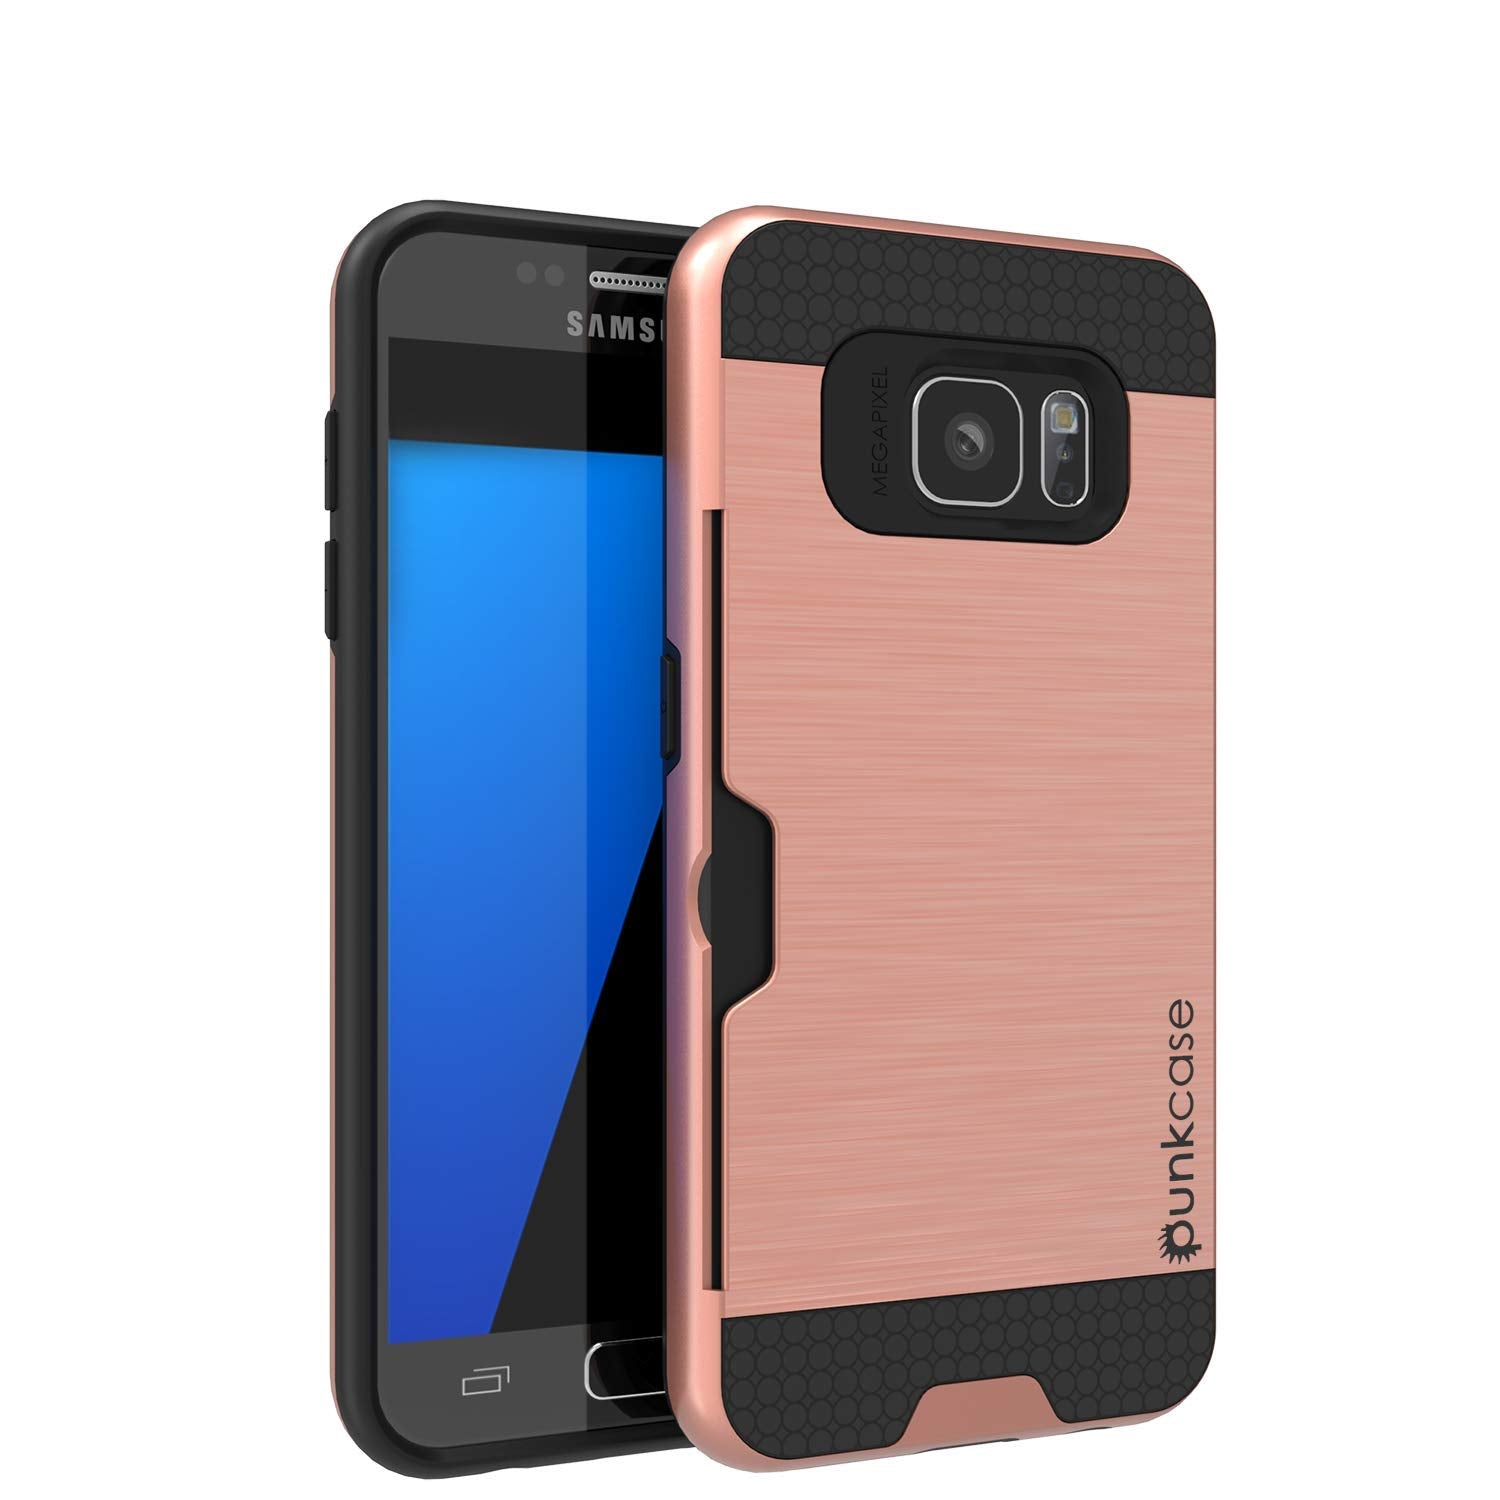 Galaxy S7+ Plus Dual-Layer Ultra Screen Protector Case W/ Card Slot [Rose]